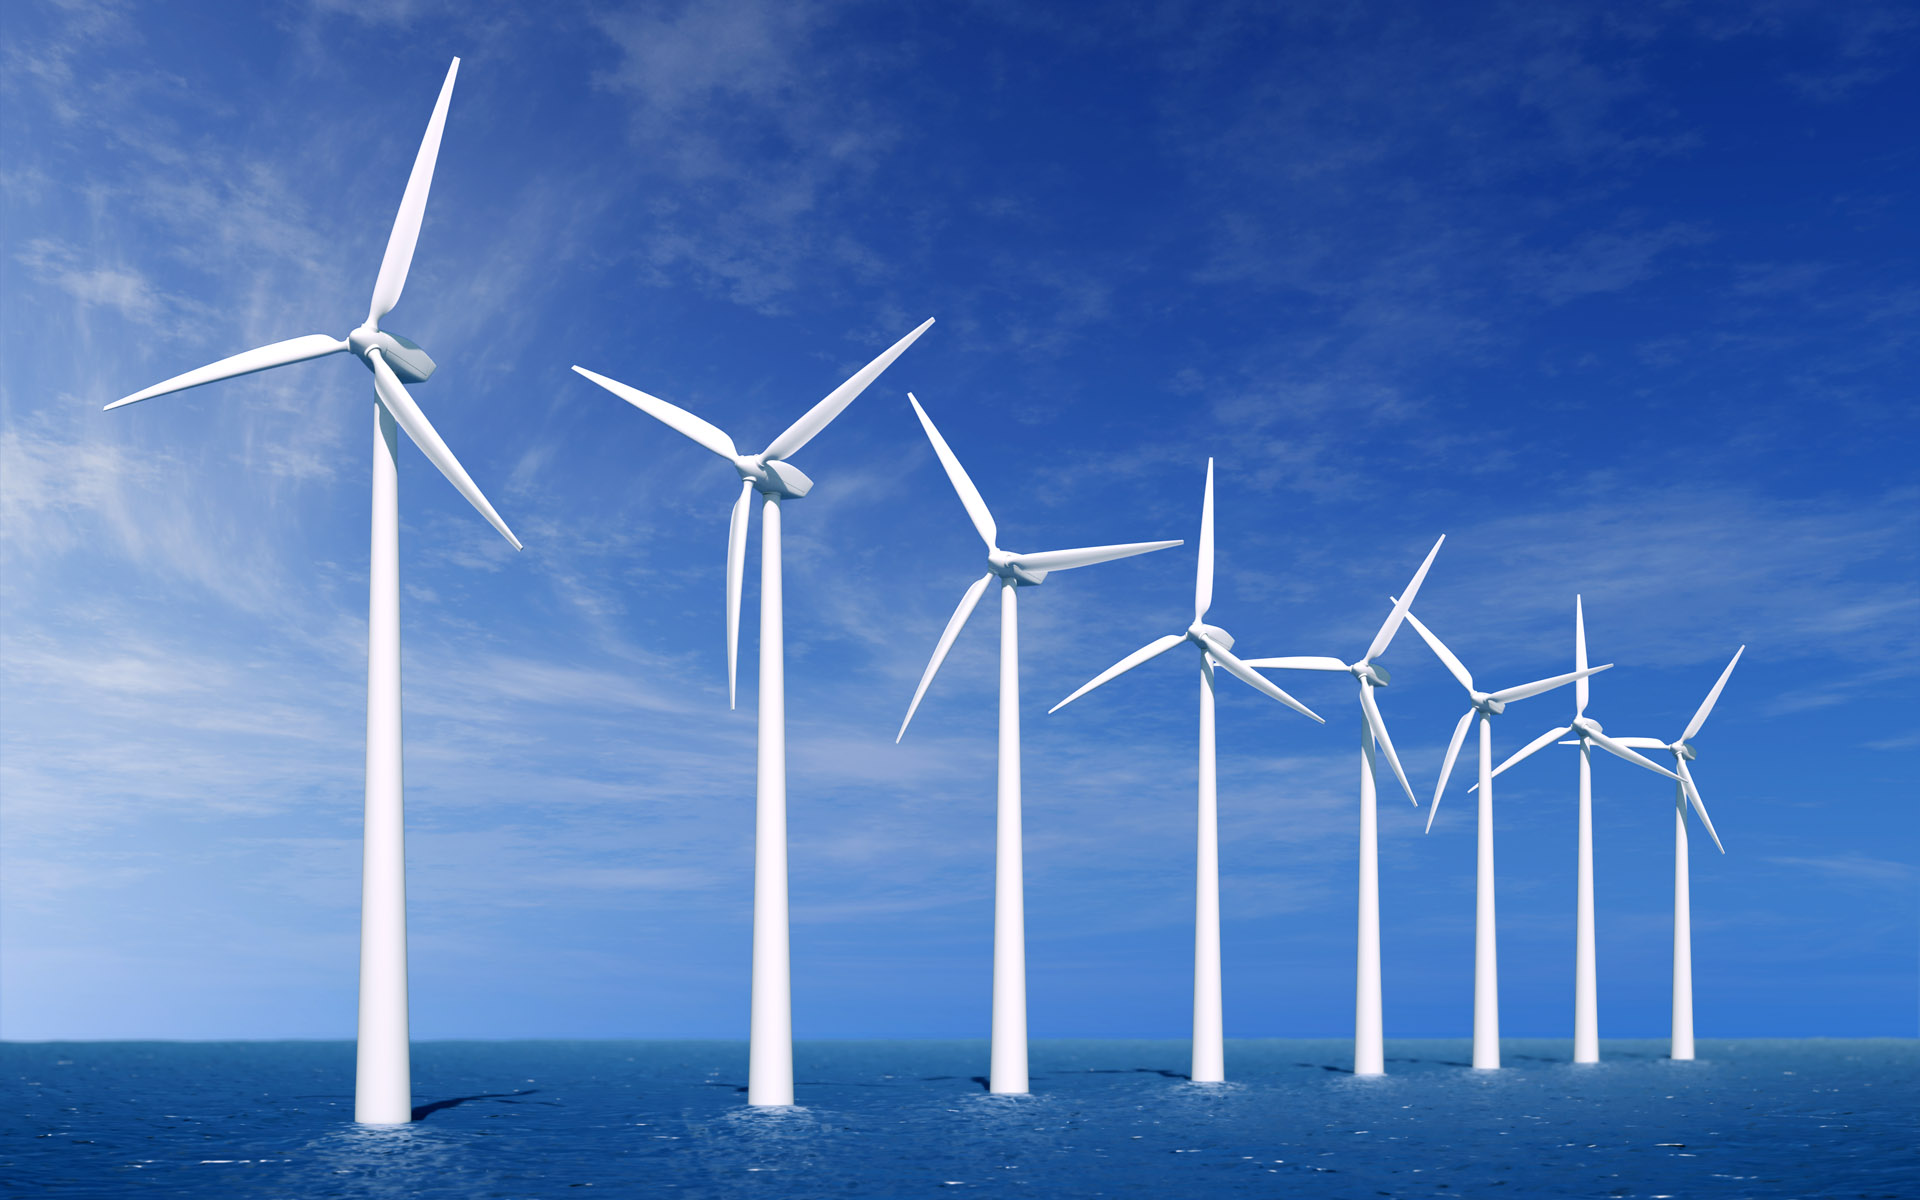 wind energy image 7765 - other - others